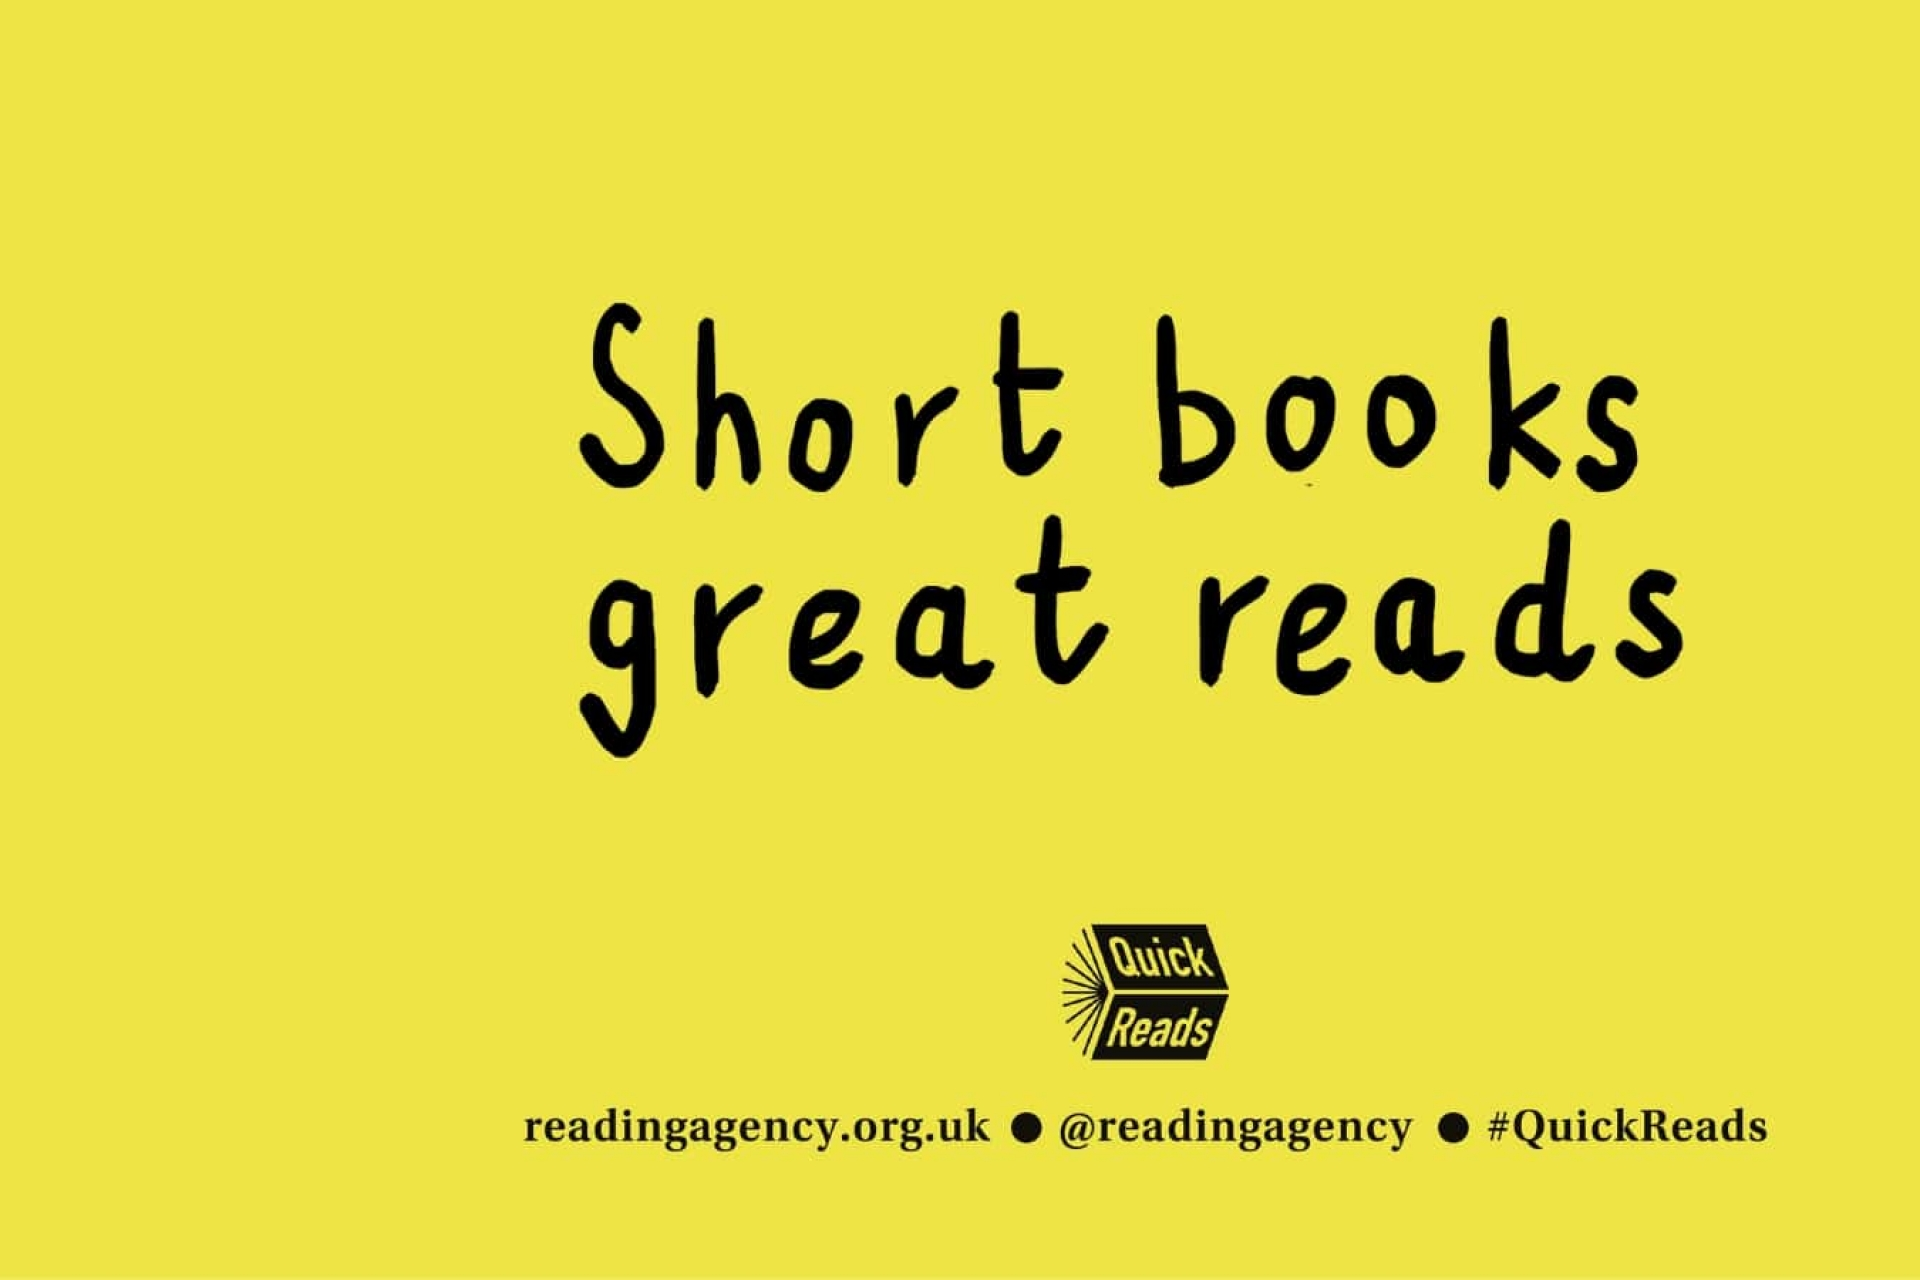 Quick Reads - Short books and great stories by bestselling authors - 2022 books announced!